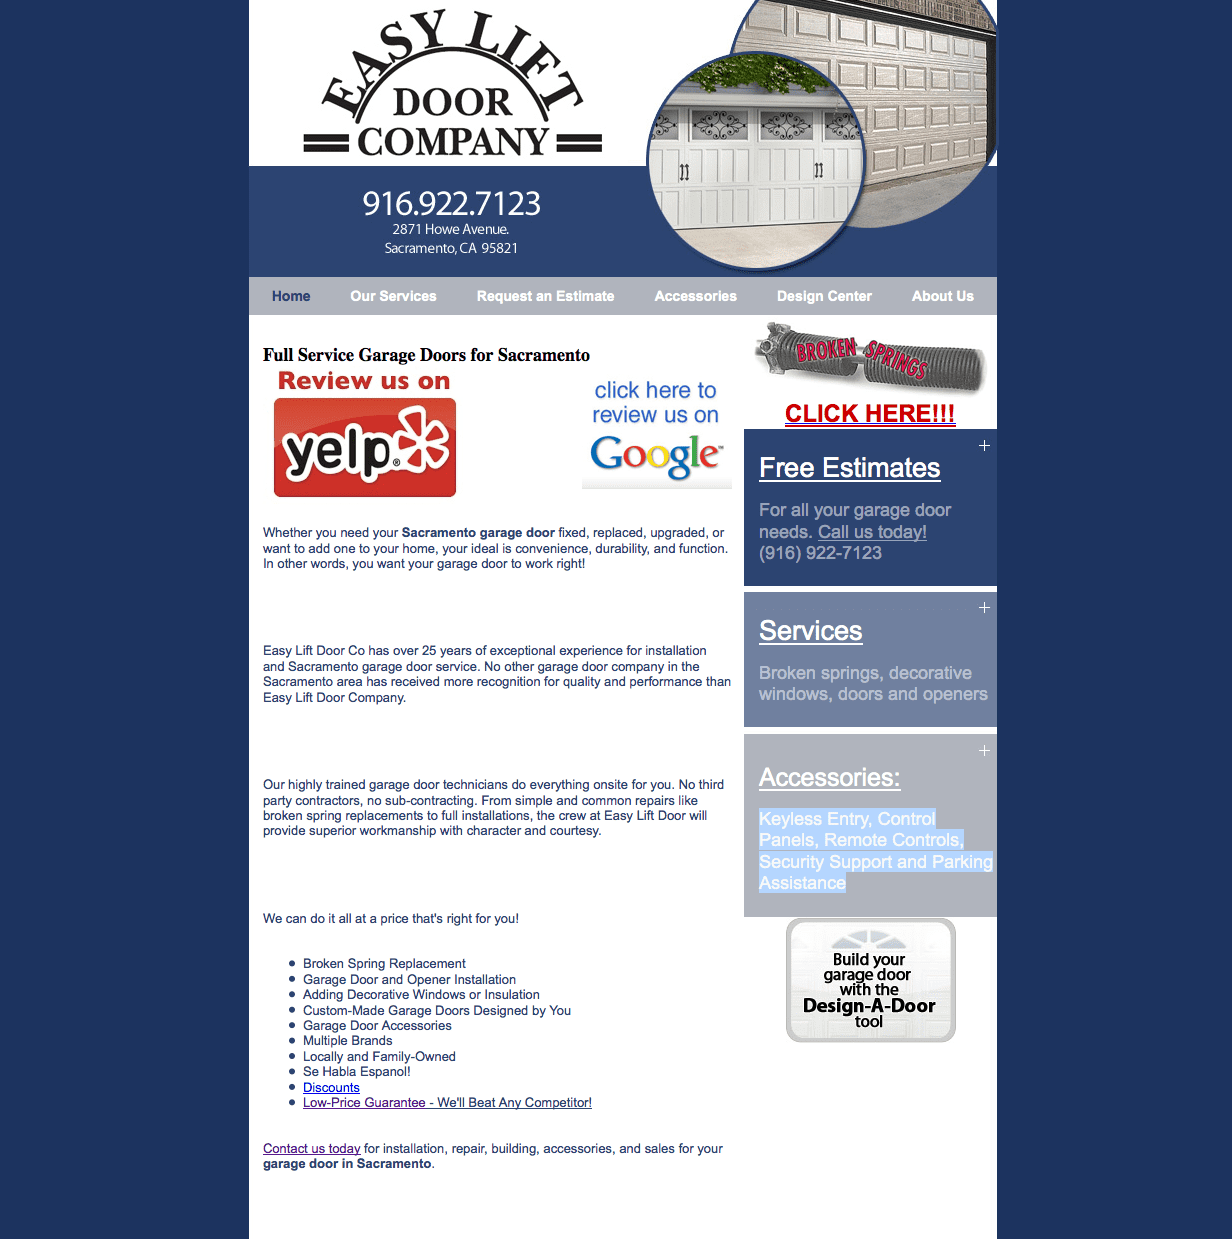 Old Website Design  sc 1 st  Webinet Media & Easy Lift Door Company - Webinet Media